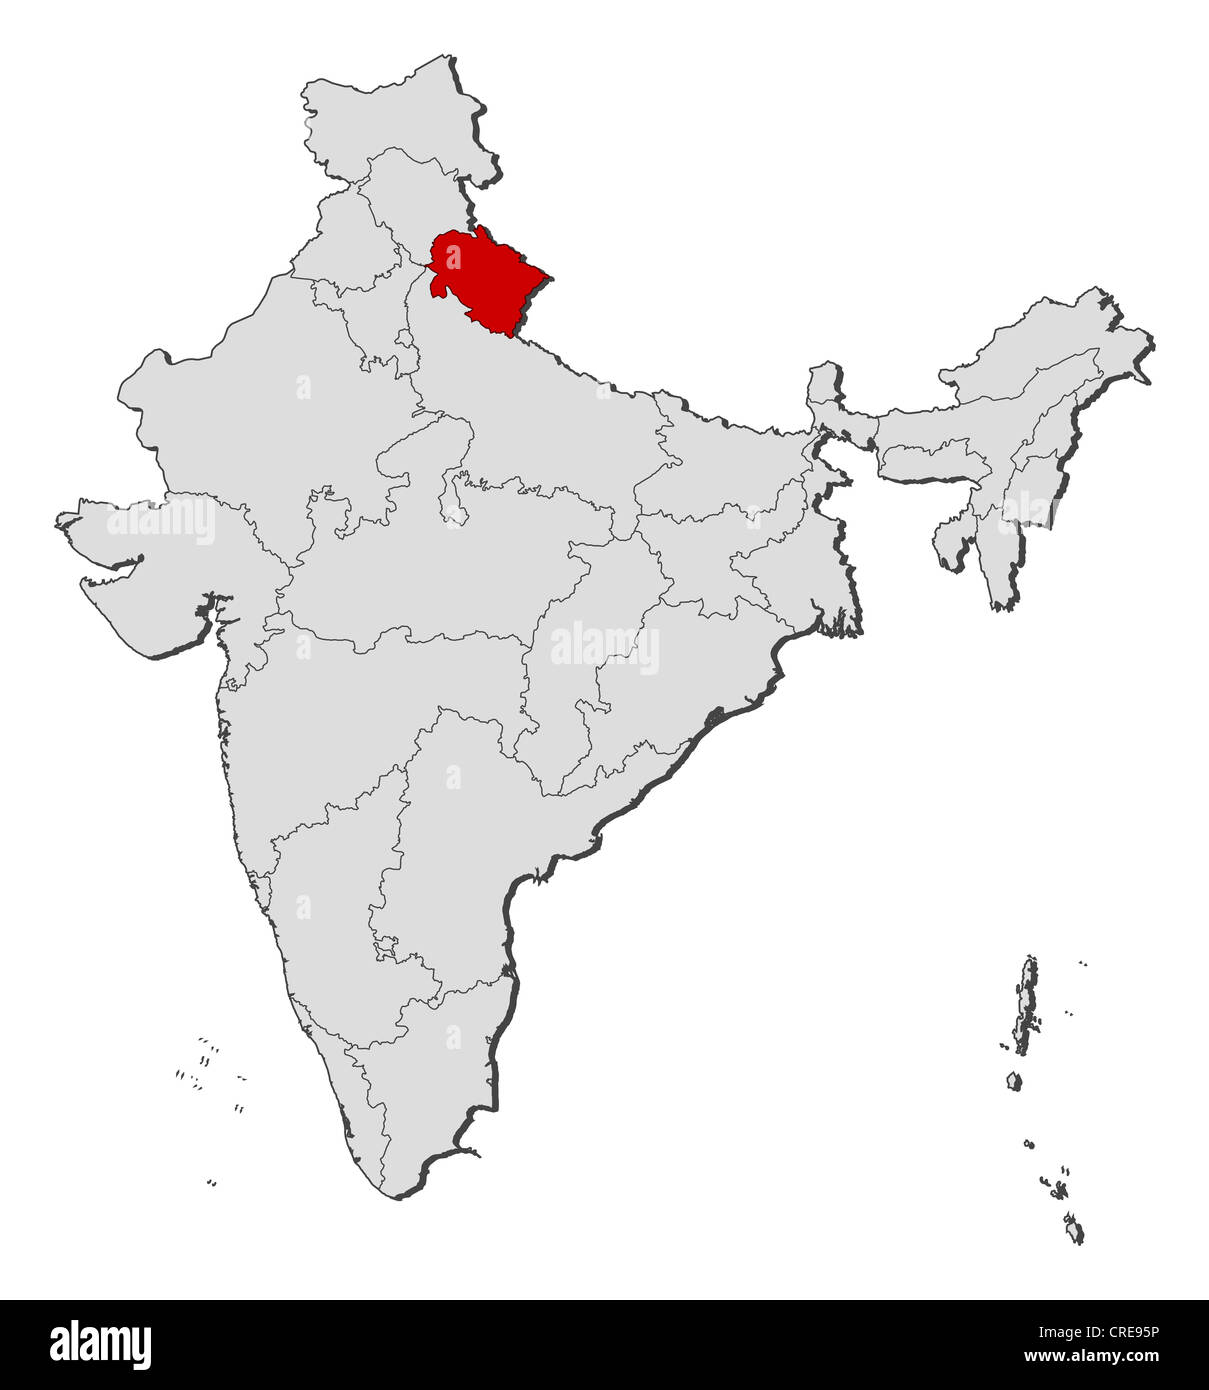 Map Of Uttarakhand Stock Photos & Map Of Uttarakhand Stock ...